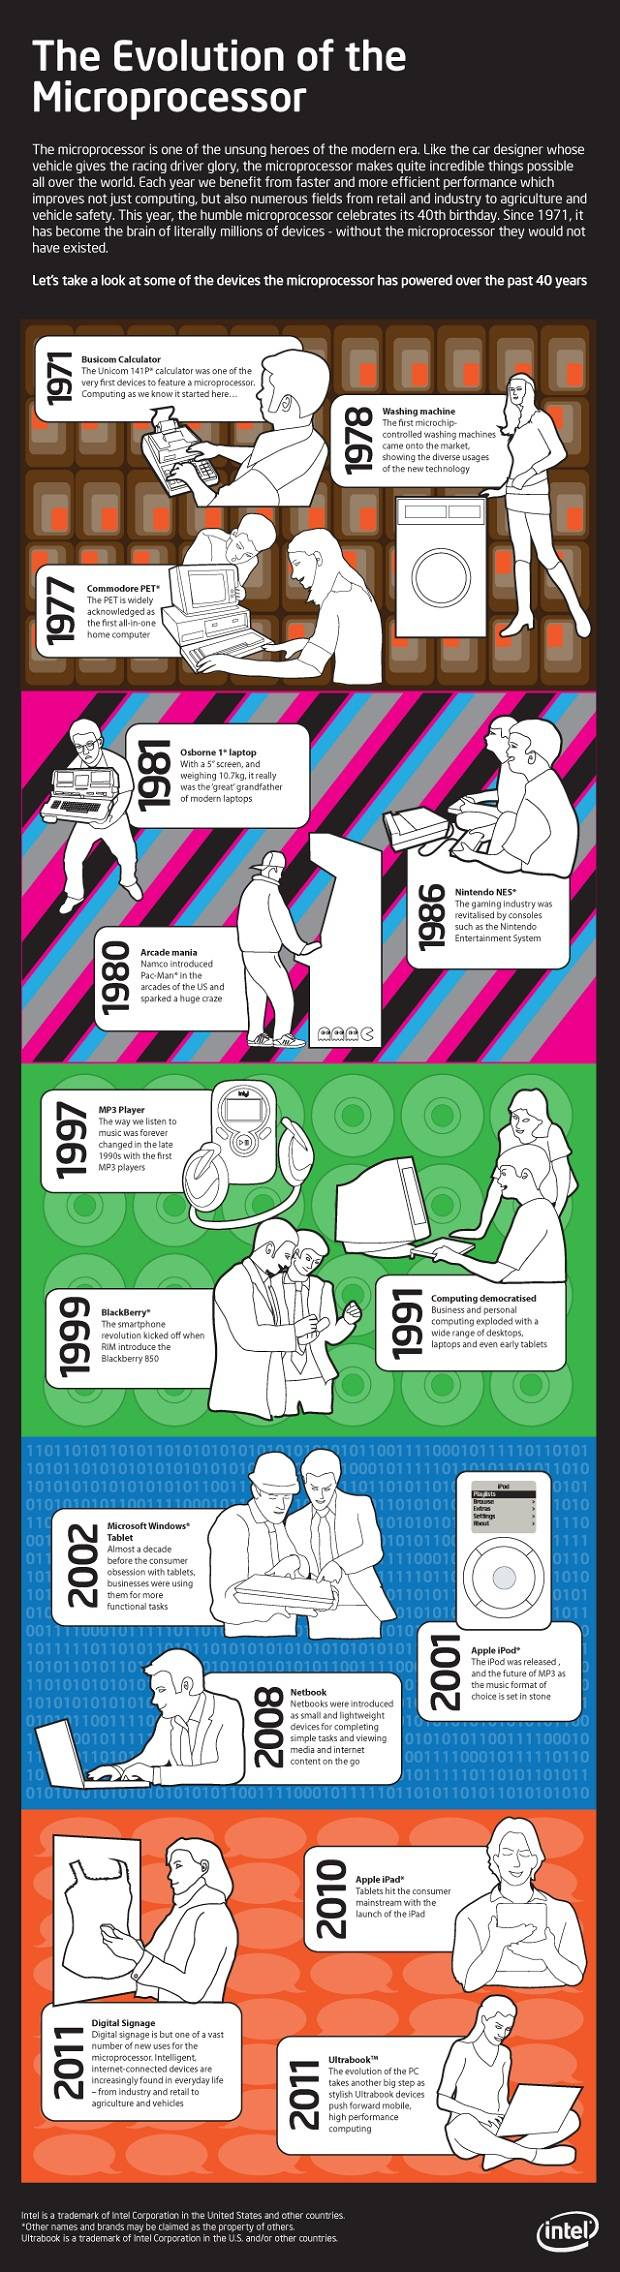 The evolution of the microprocessor